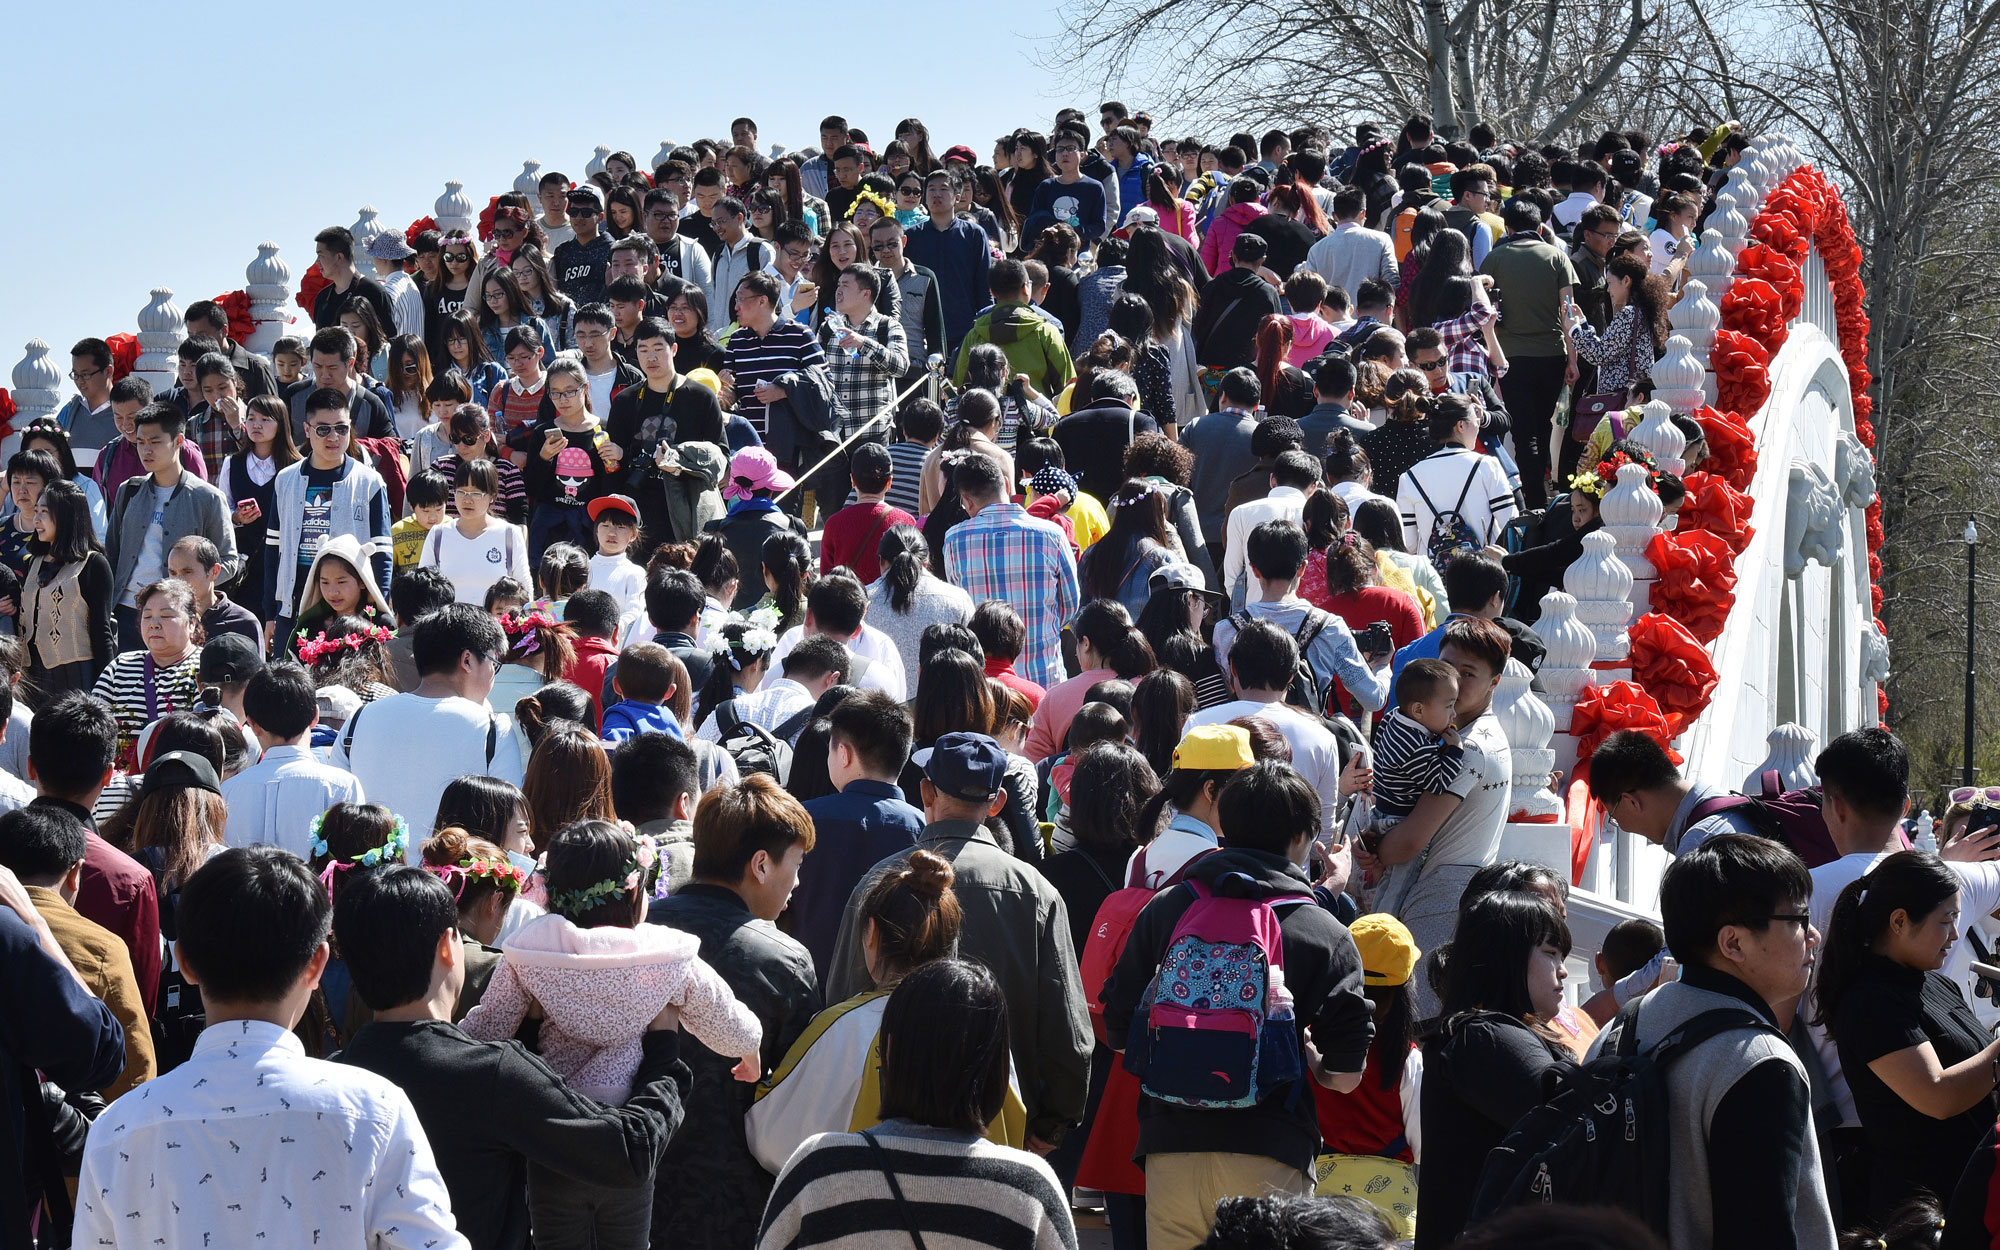 Huge Crowds in China for National Holidays